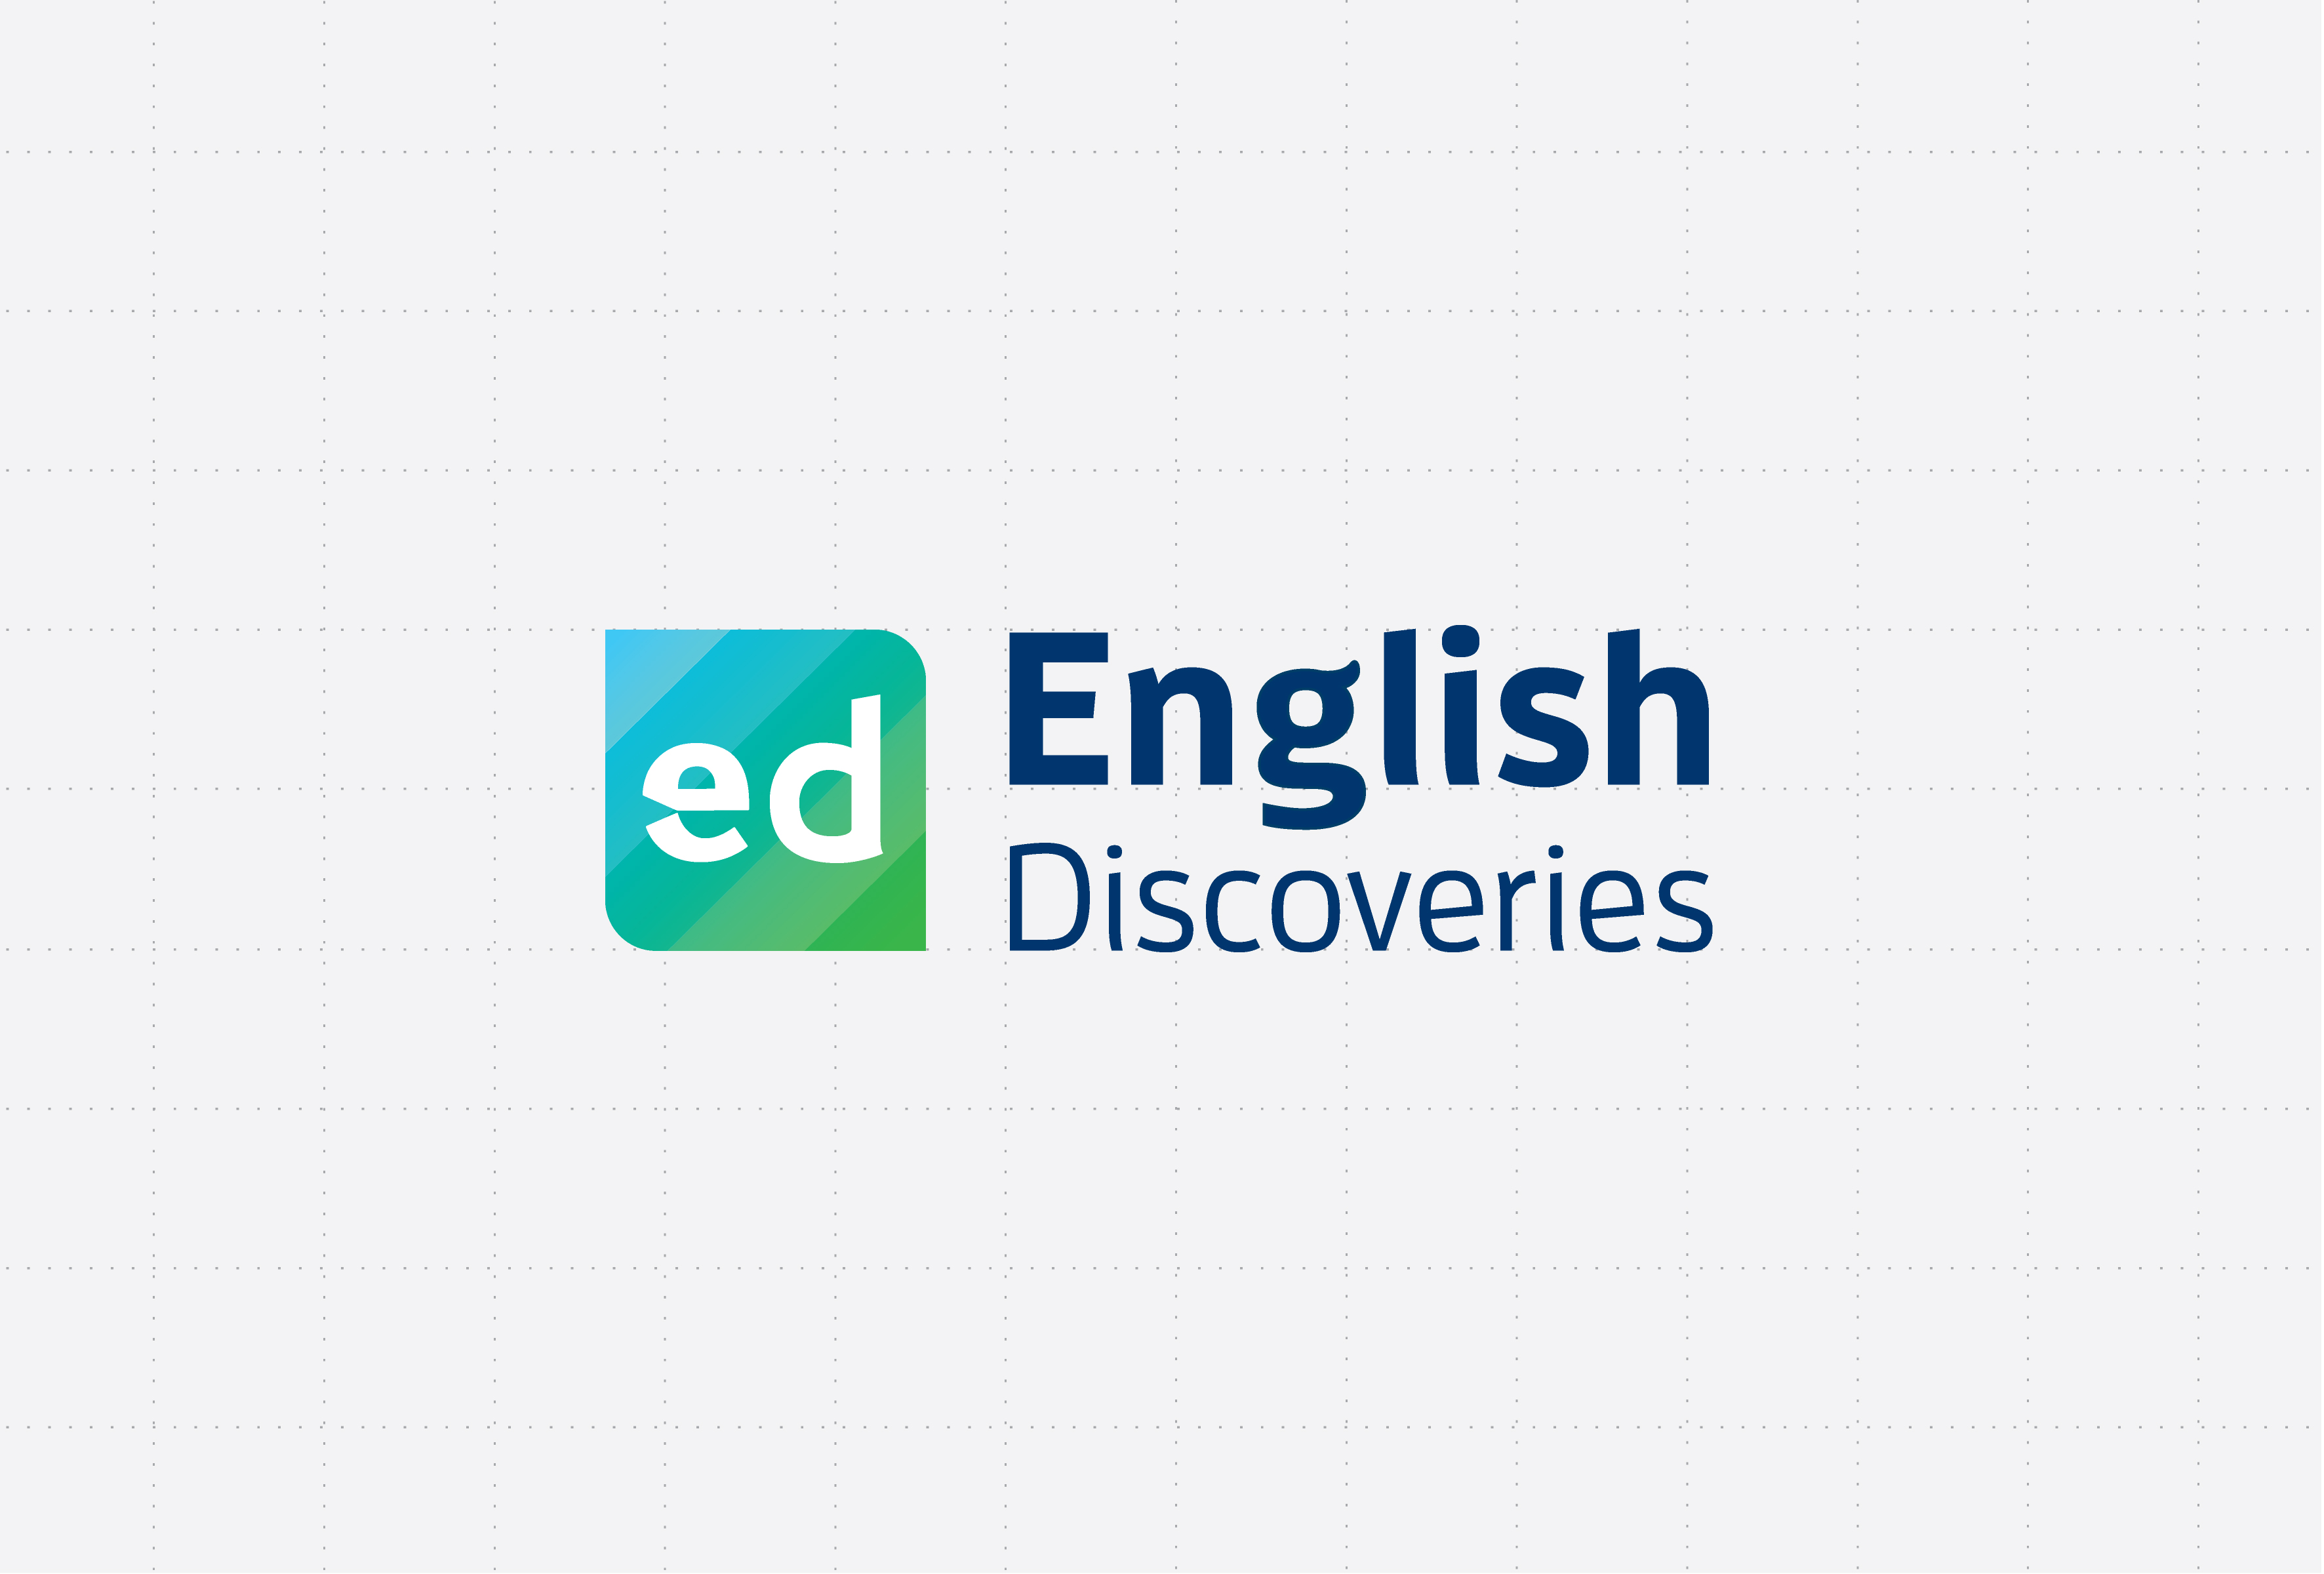 English Discoveries